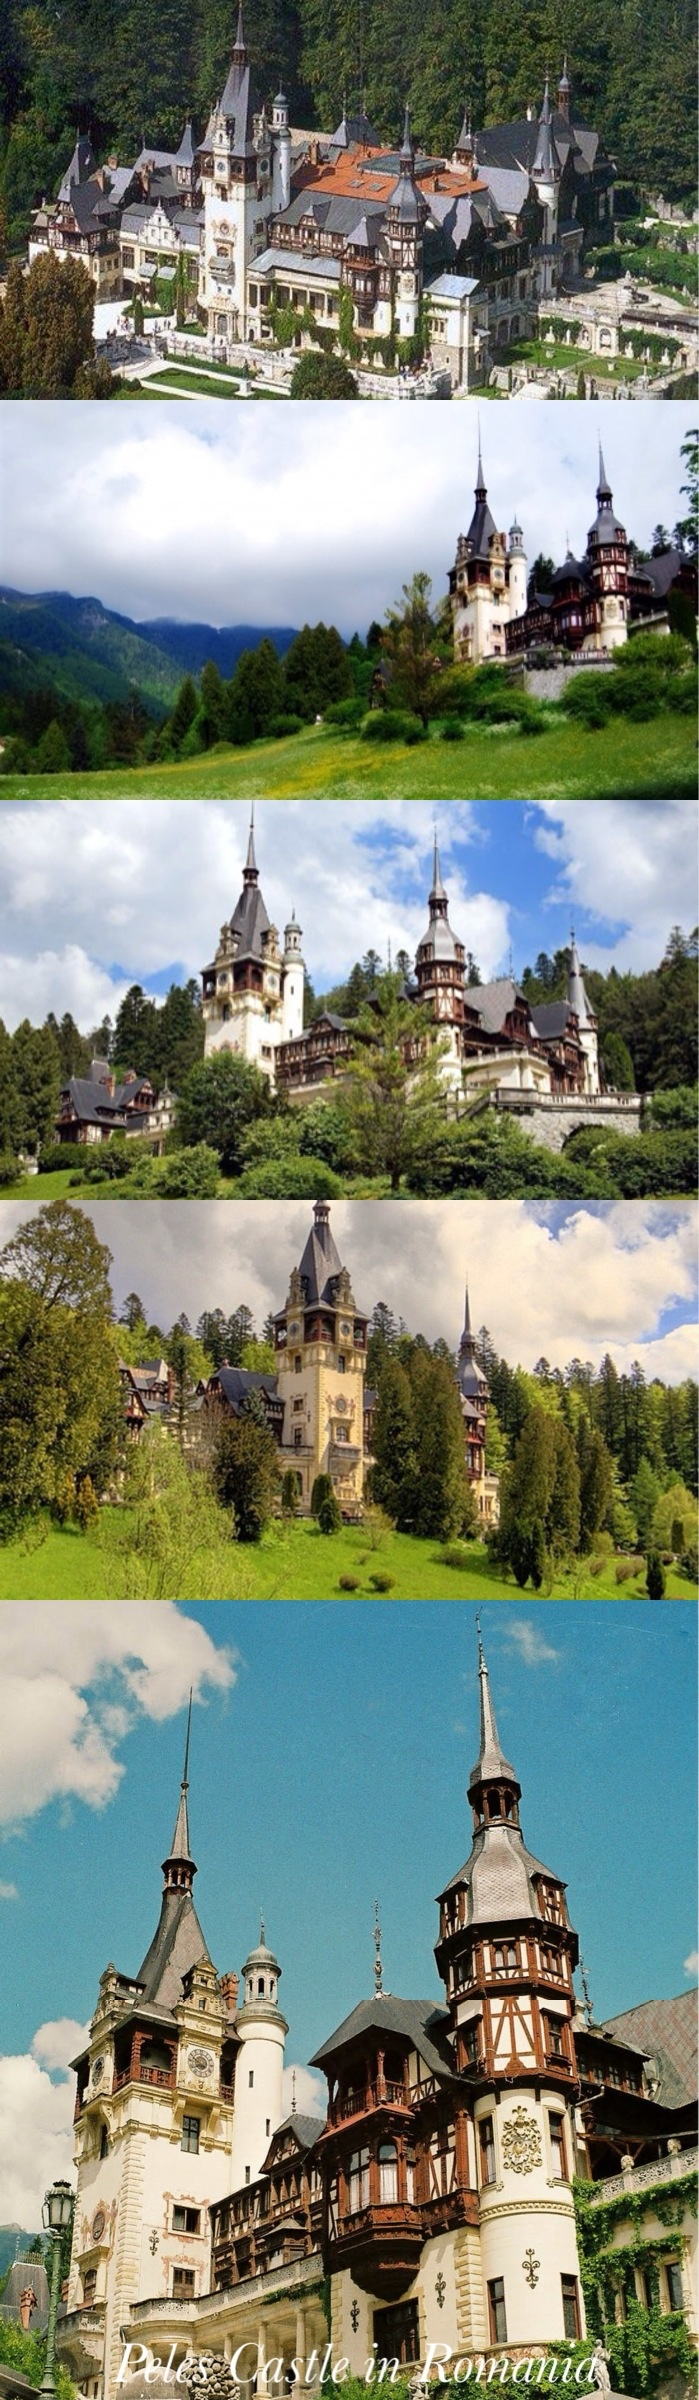 Sinaia, Romania - Peleș Castle is a Neo-Renaissance castle in the Carpathian Mountains, built by King Carol I of Romania on an existing medieval route linking Transylvania and Wallachia provinces.